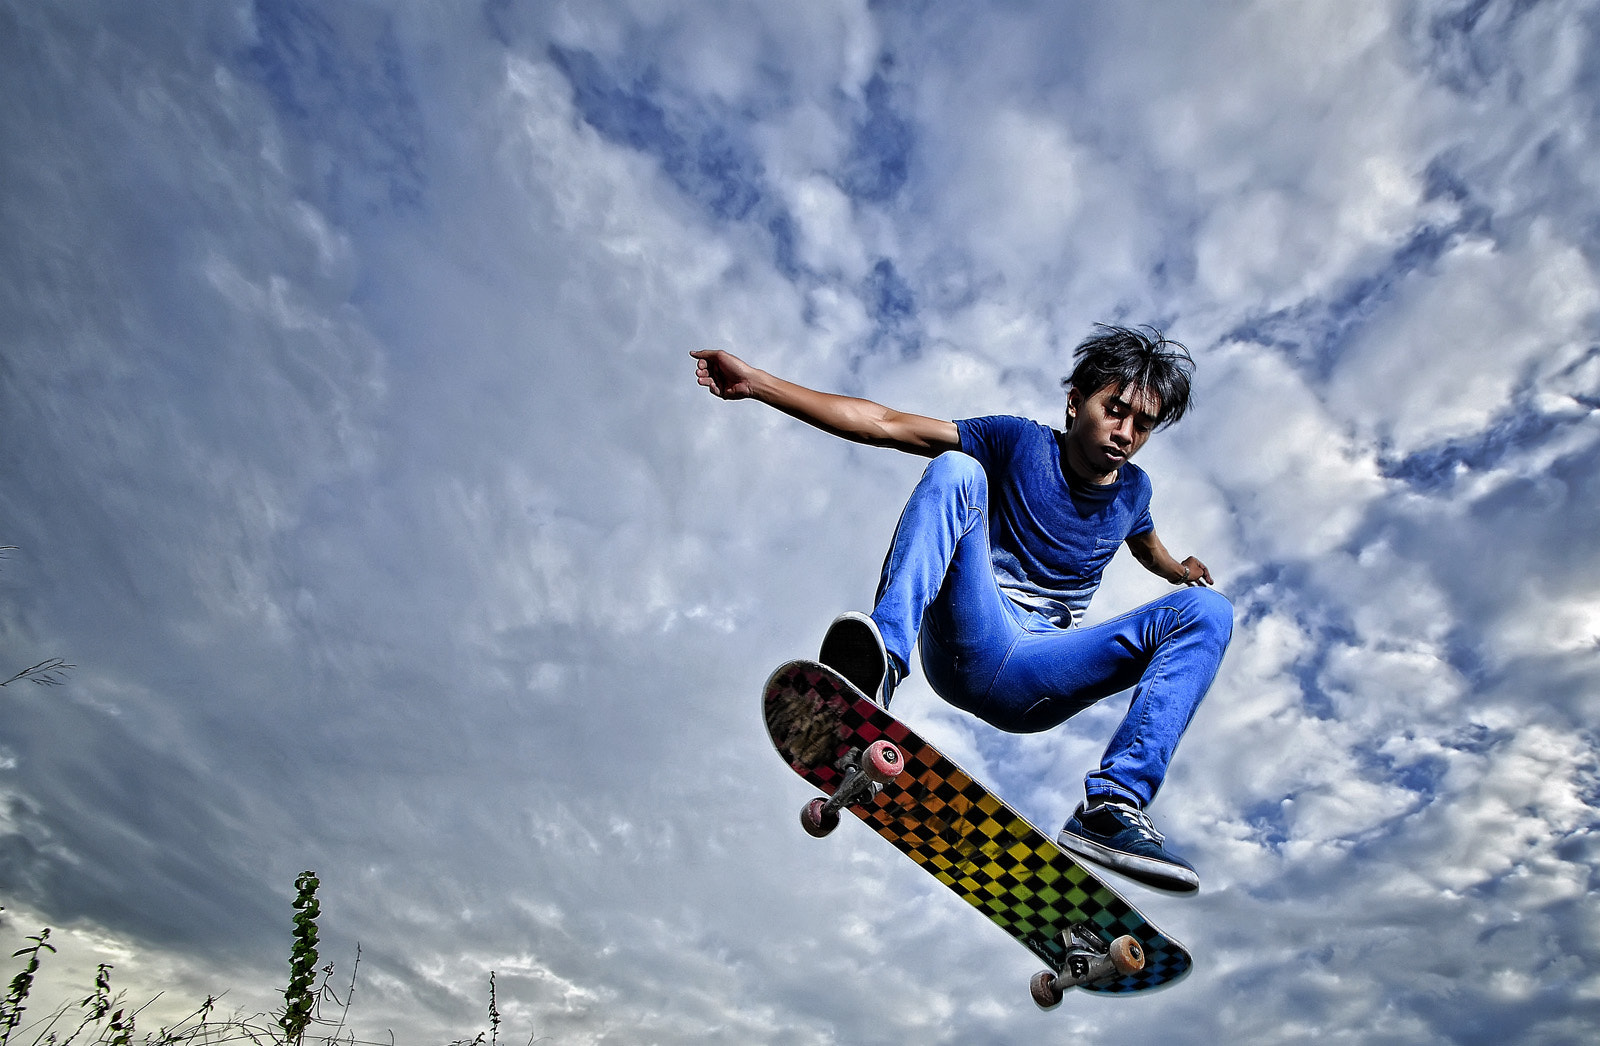 Photograph skate and jump by Afzarizam Mohamad on 500px